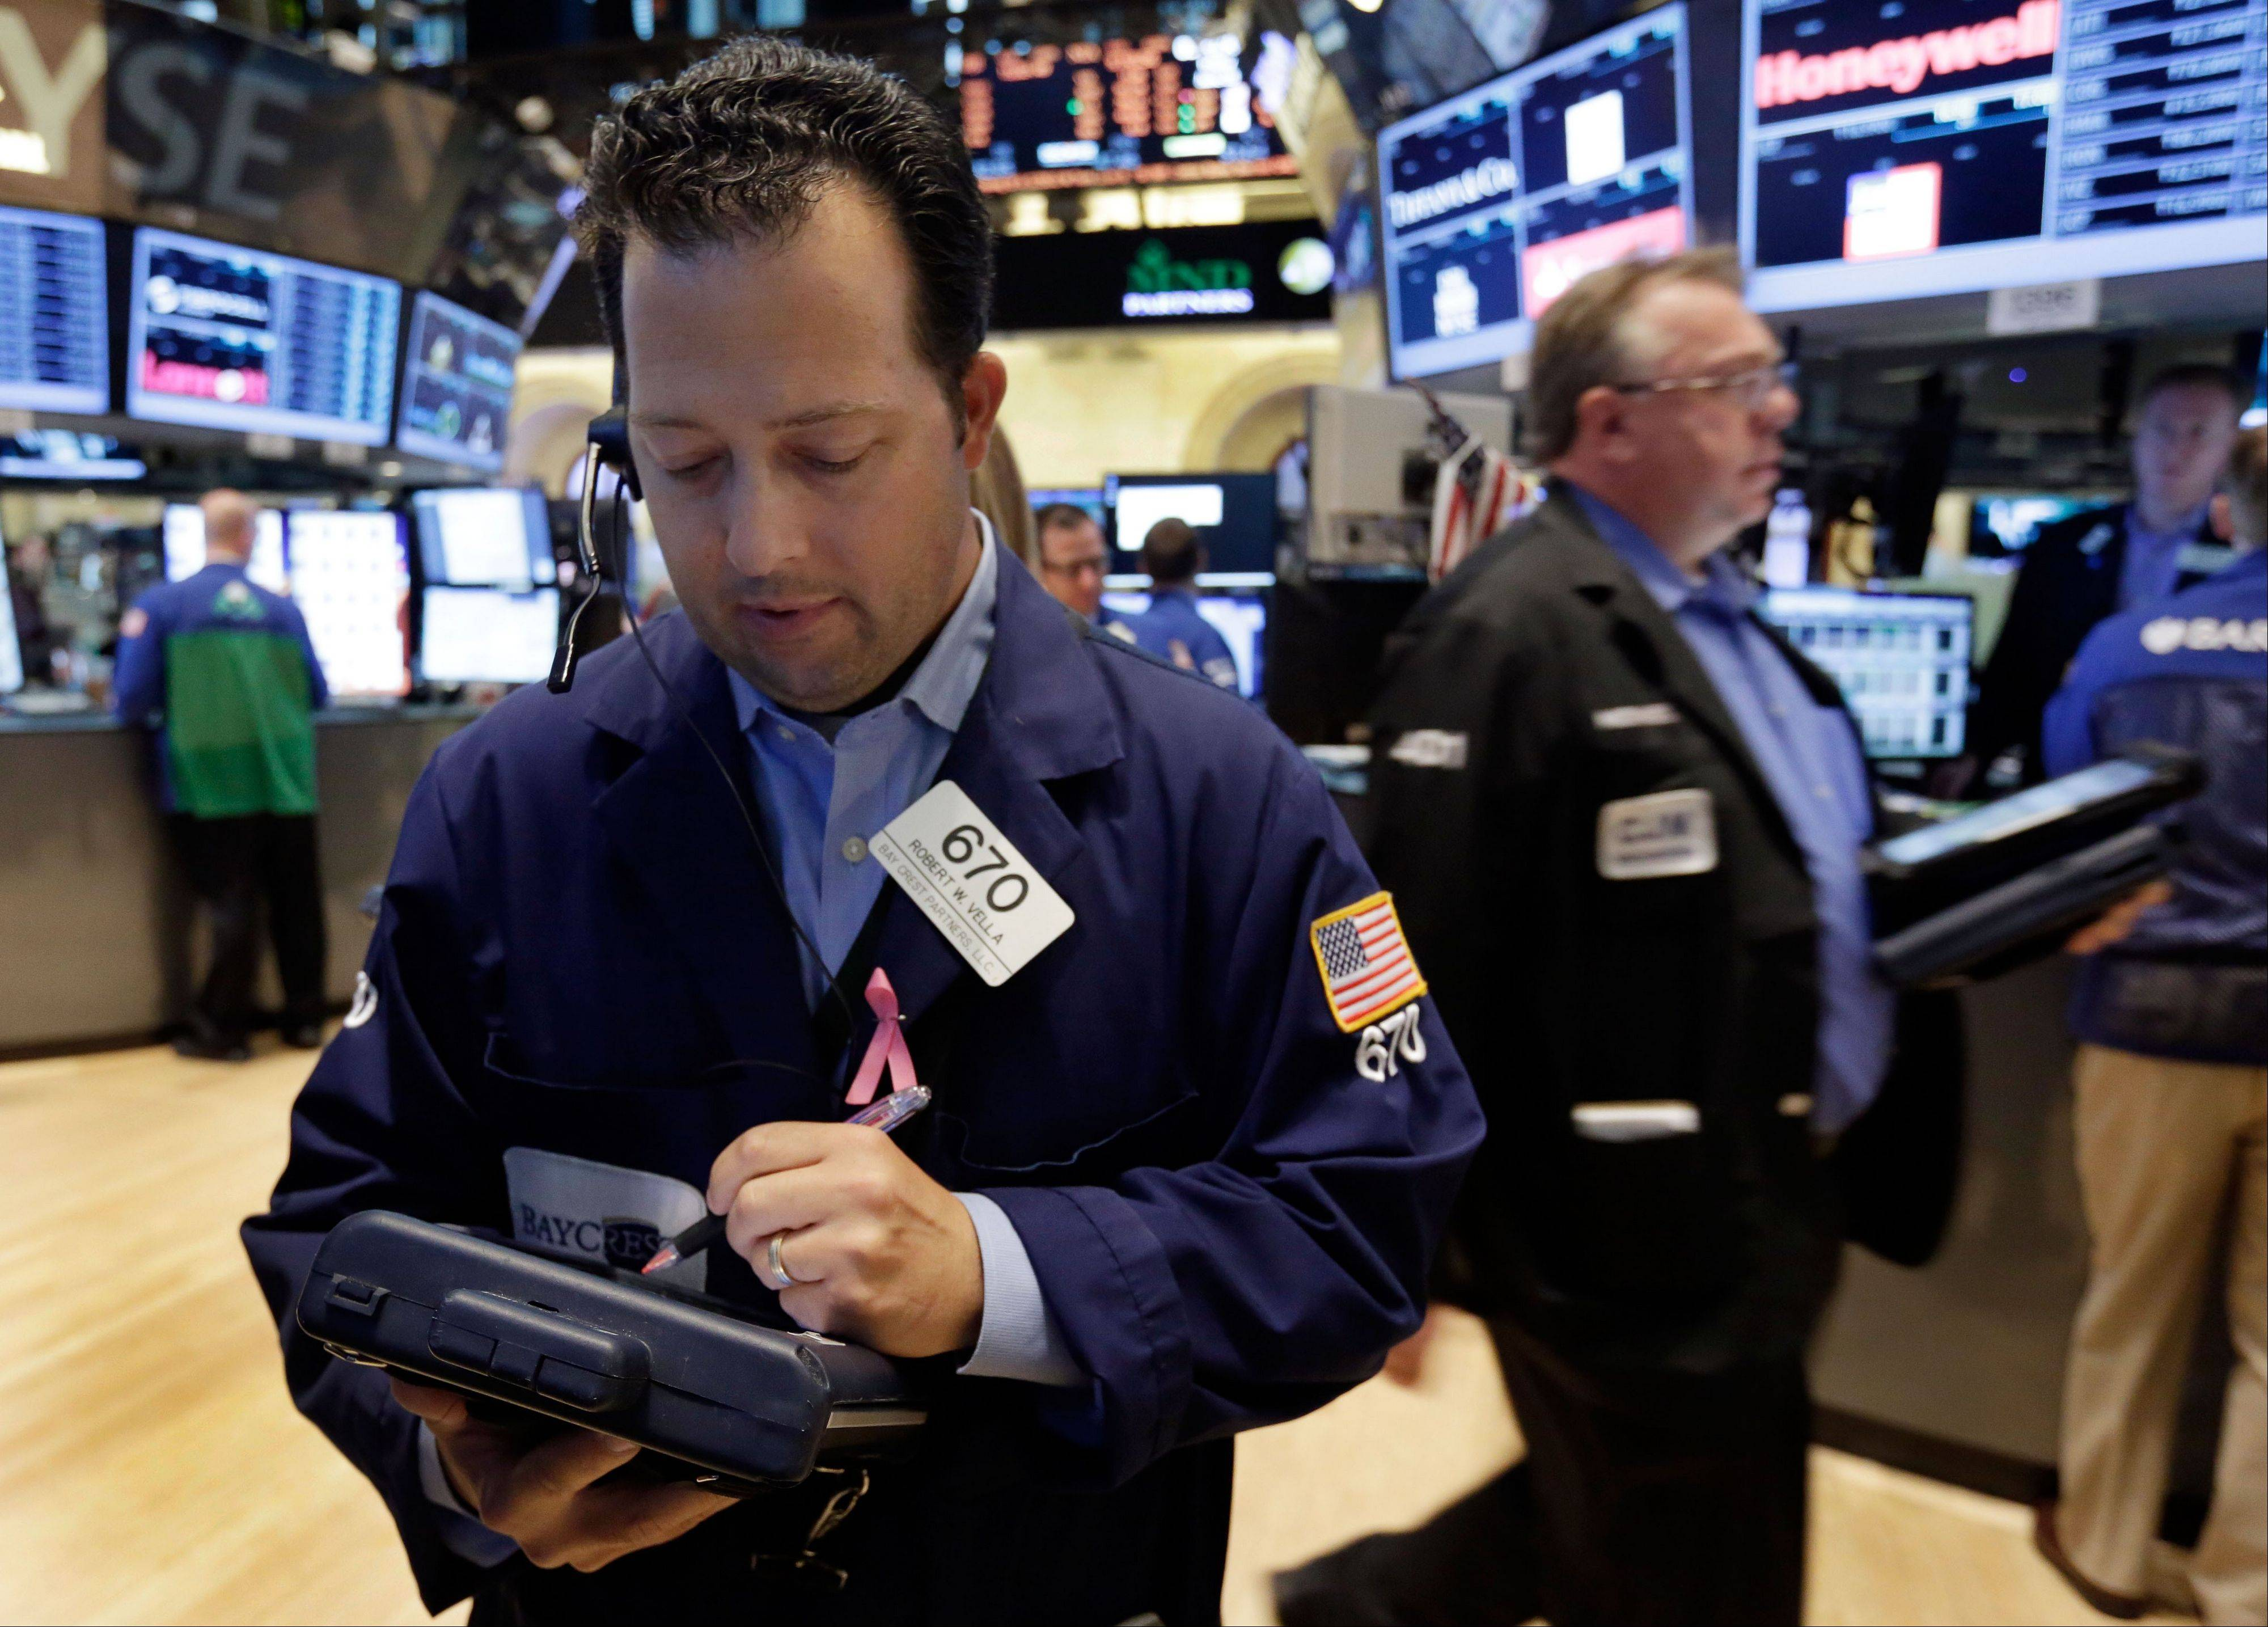 U.S. stocks fell, erasing earlier gains, as the Standard & Poor�s 500 Index failed to hold above its average level from the past 50 days and investors awaited a monthly jobs report and the start of corporate earnings.